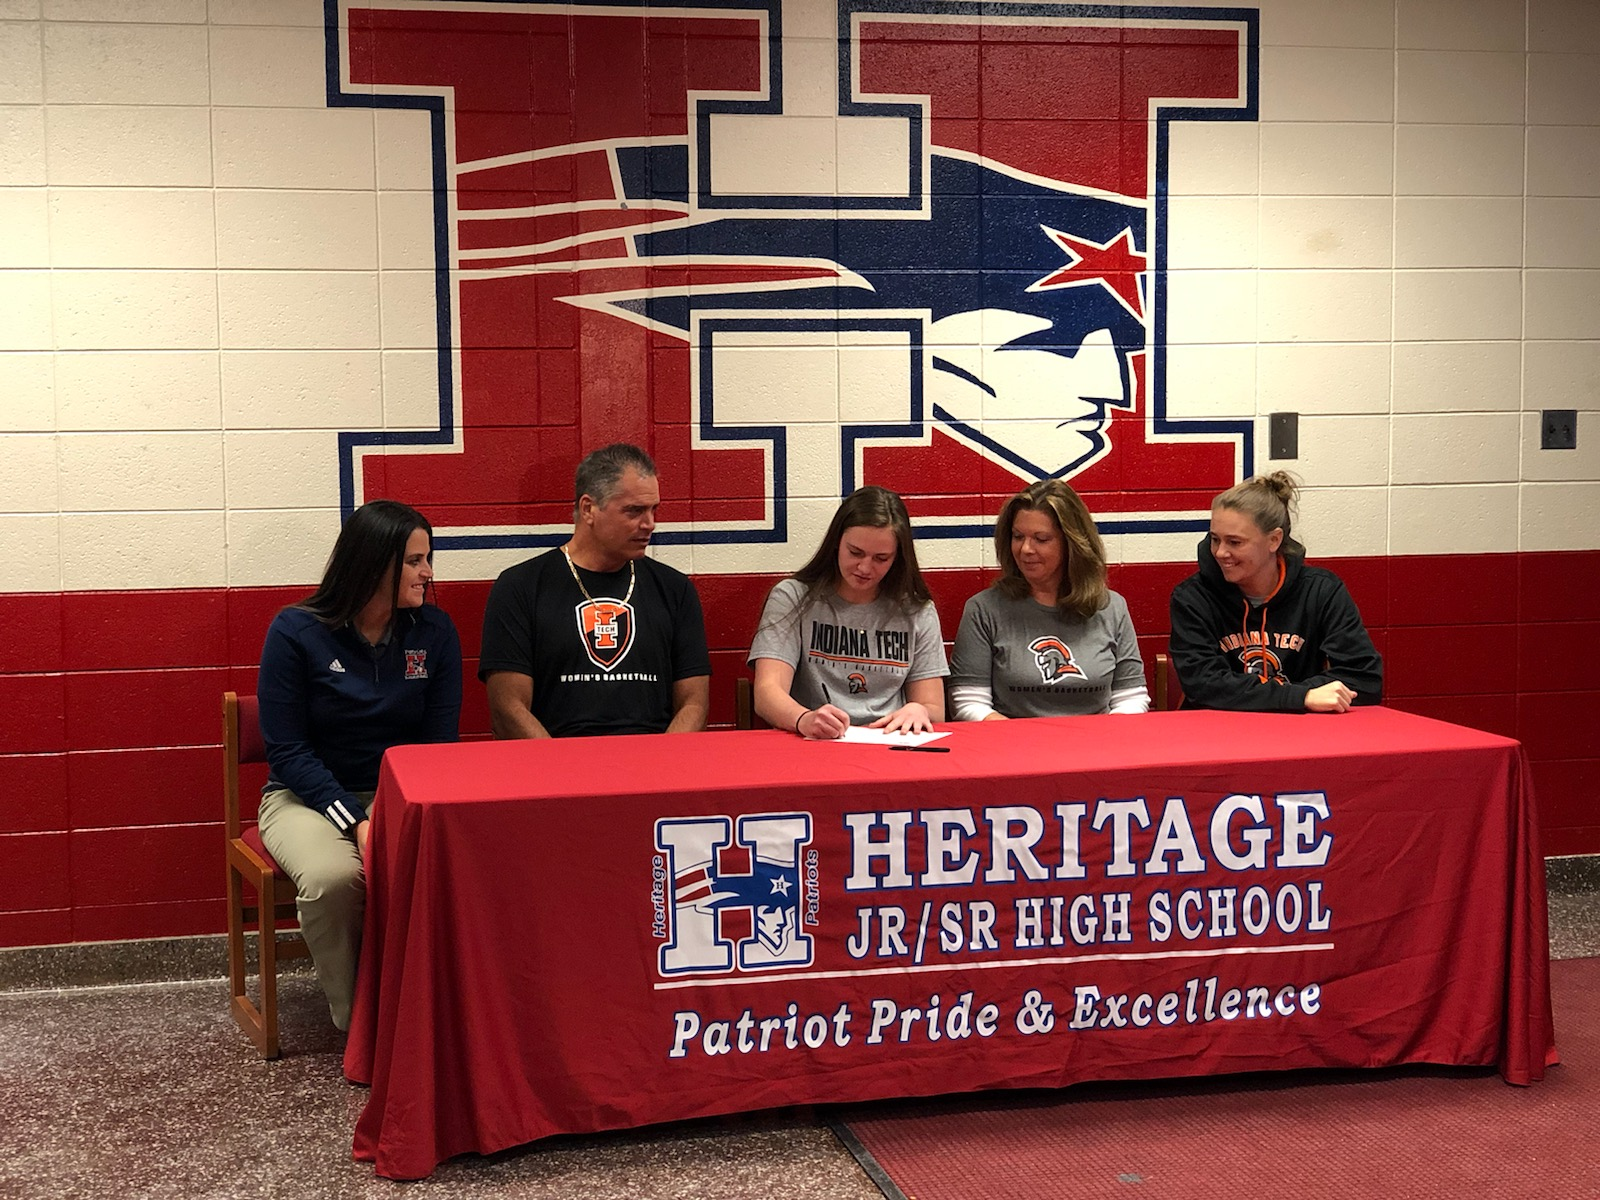 Heritage's Bree Dossen signs with Indiana Tech women's basketball